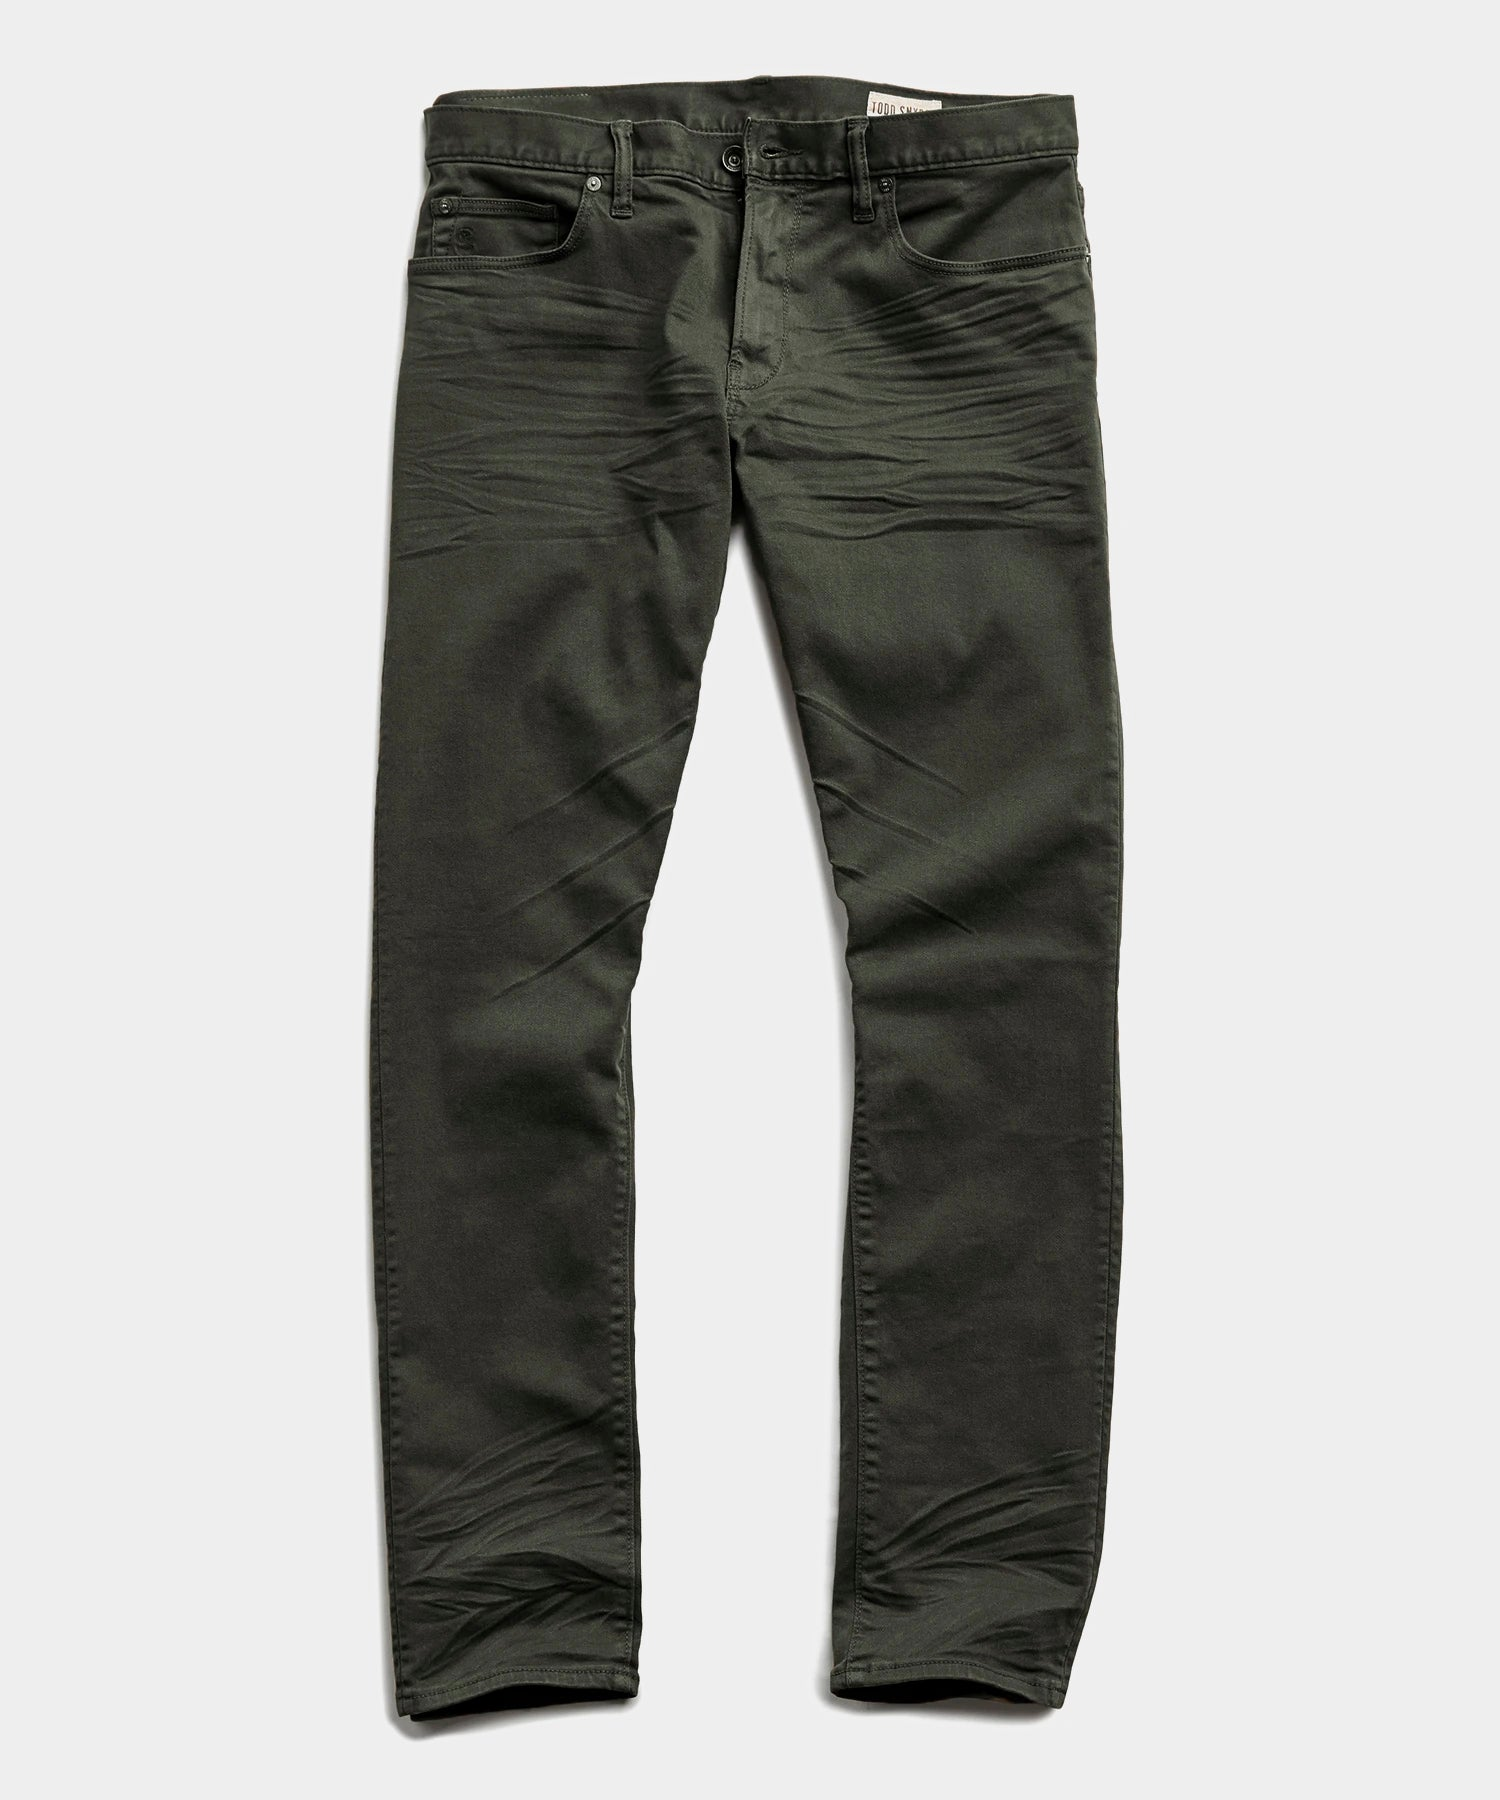 Slim Fit 5-Pocket Garment-Dyed Stretch Twill in Peat